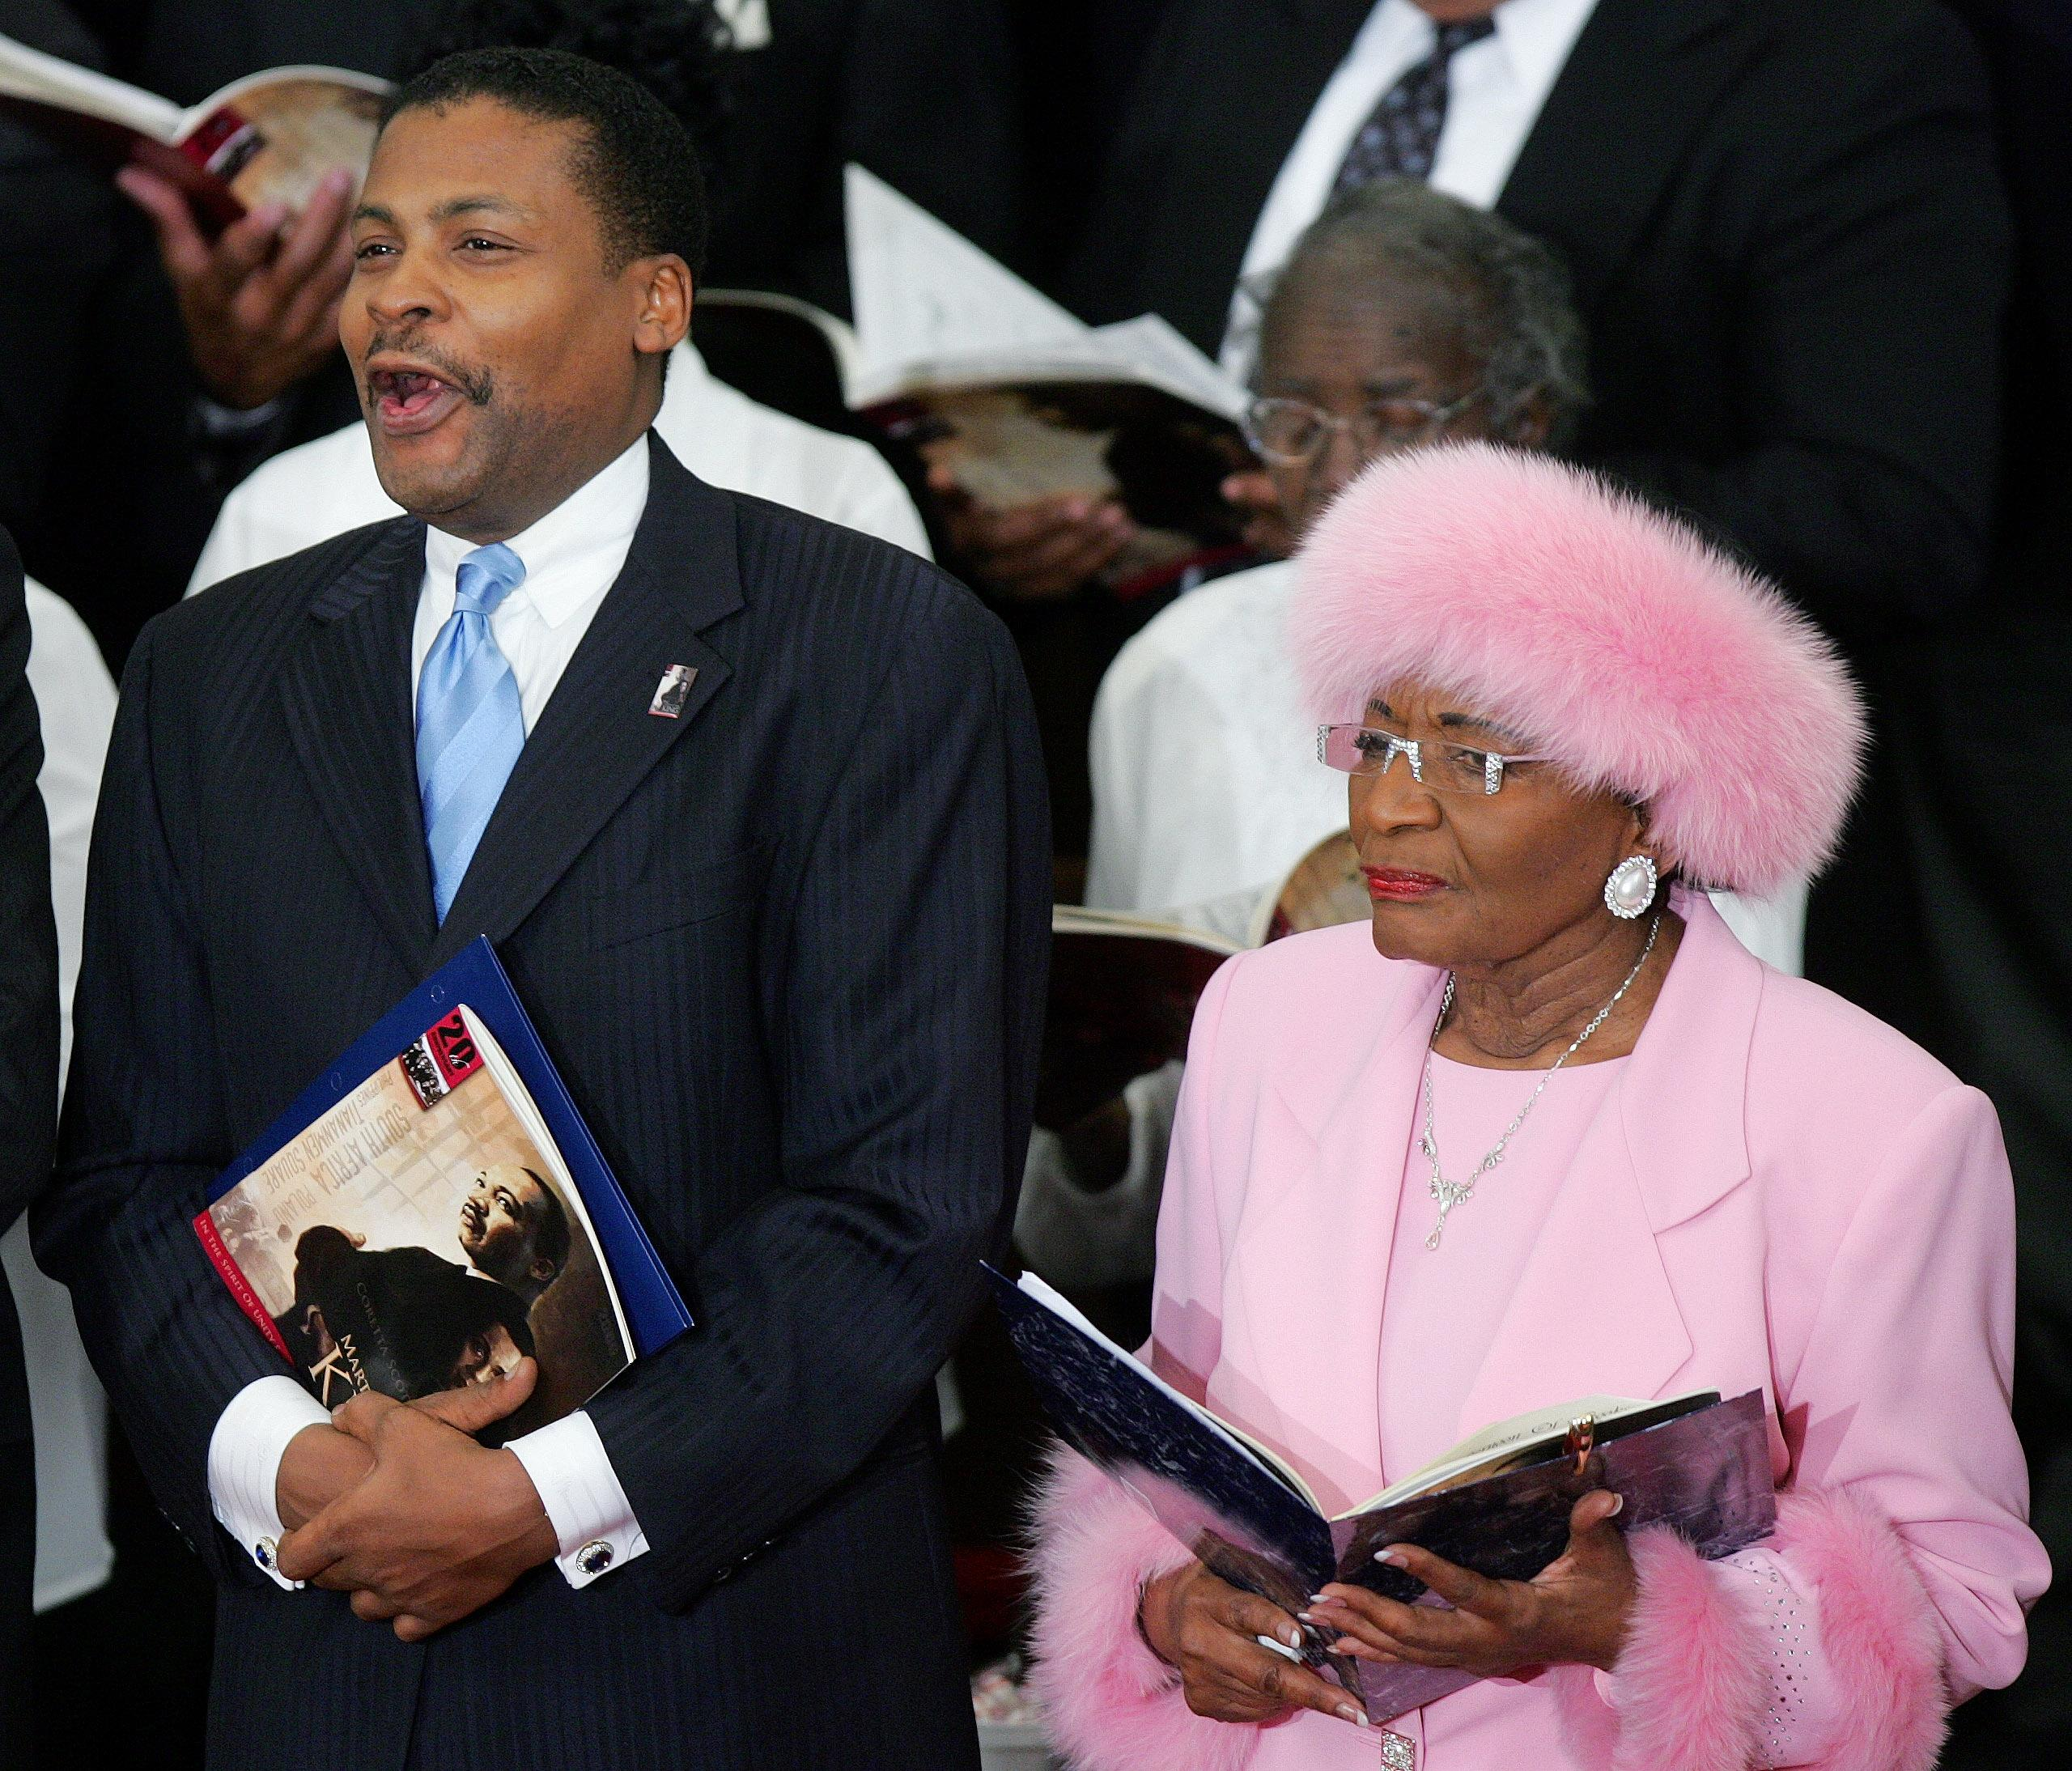 Brother In Law Of Martin Luther King Jr Dies At 83 The Spokesman